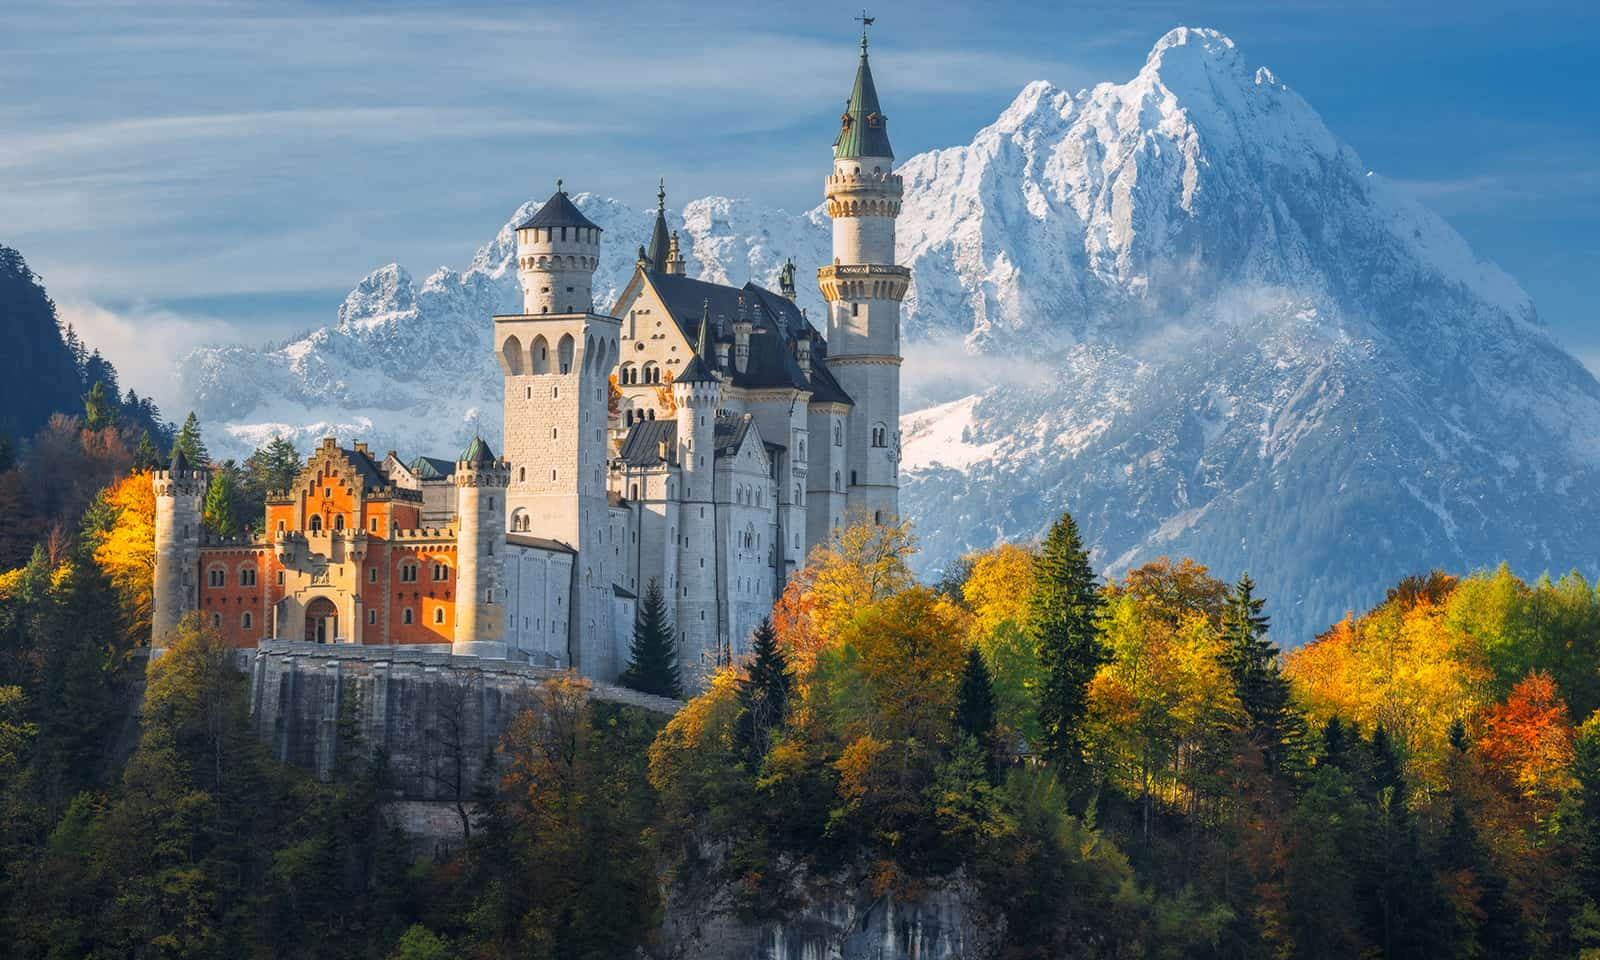 trip-to-europe-places-to-go-you-wont-see-on-instagram-main-image